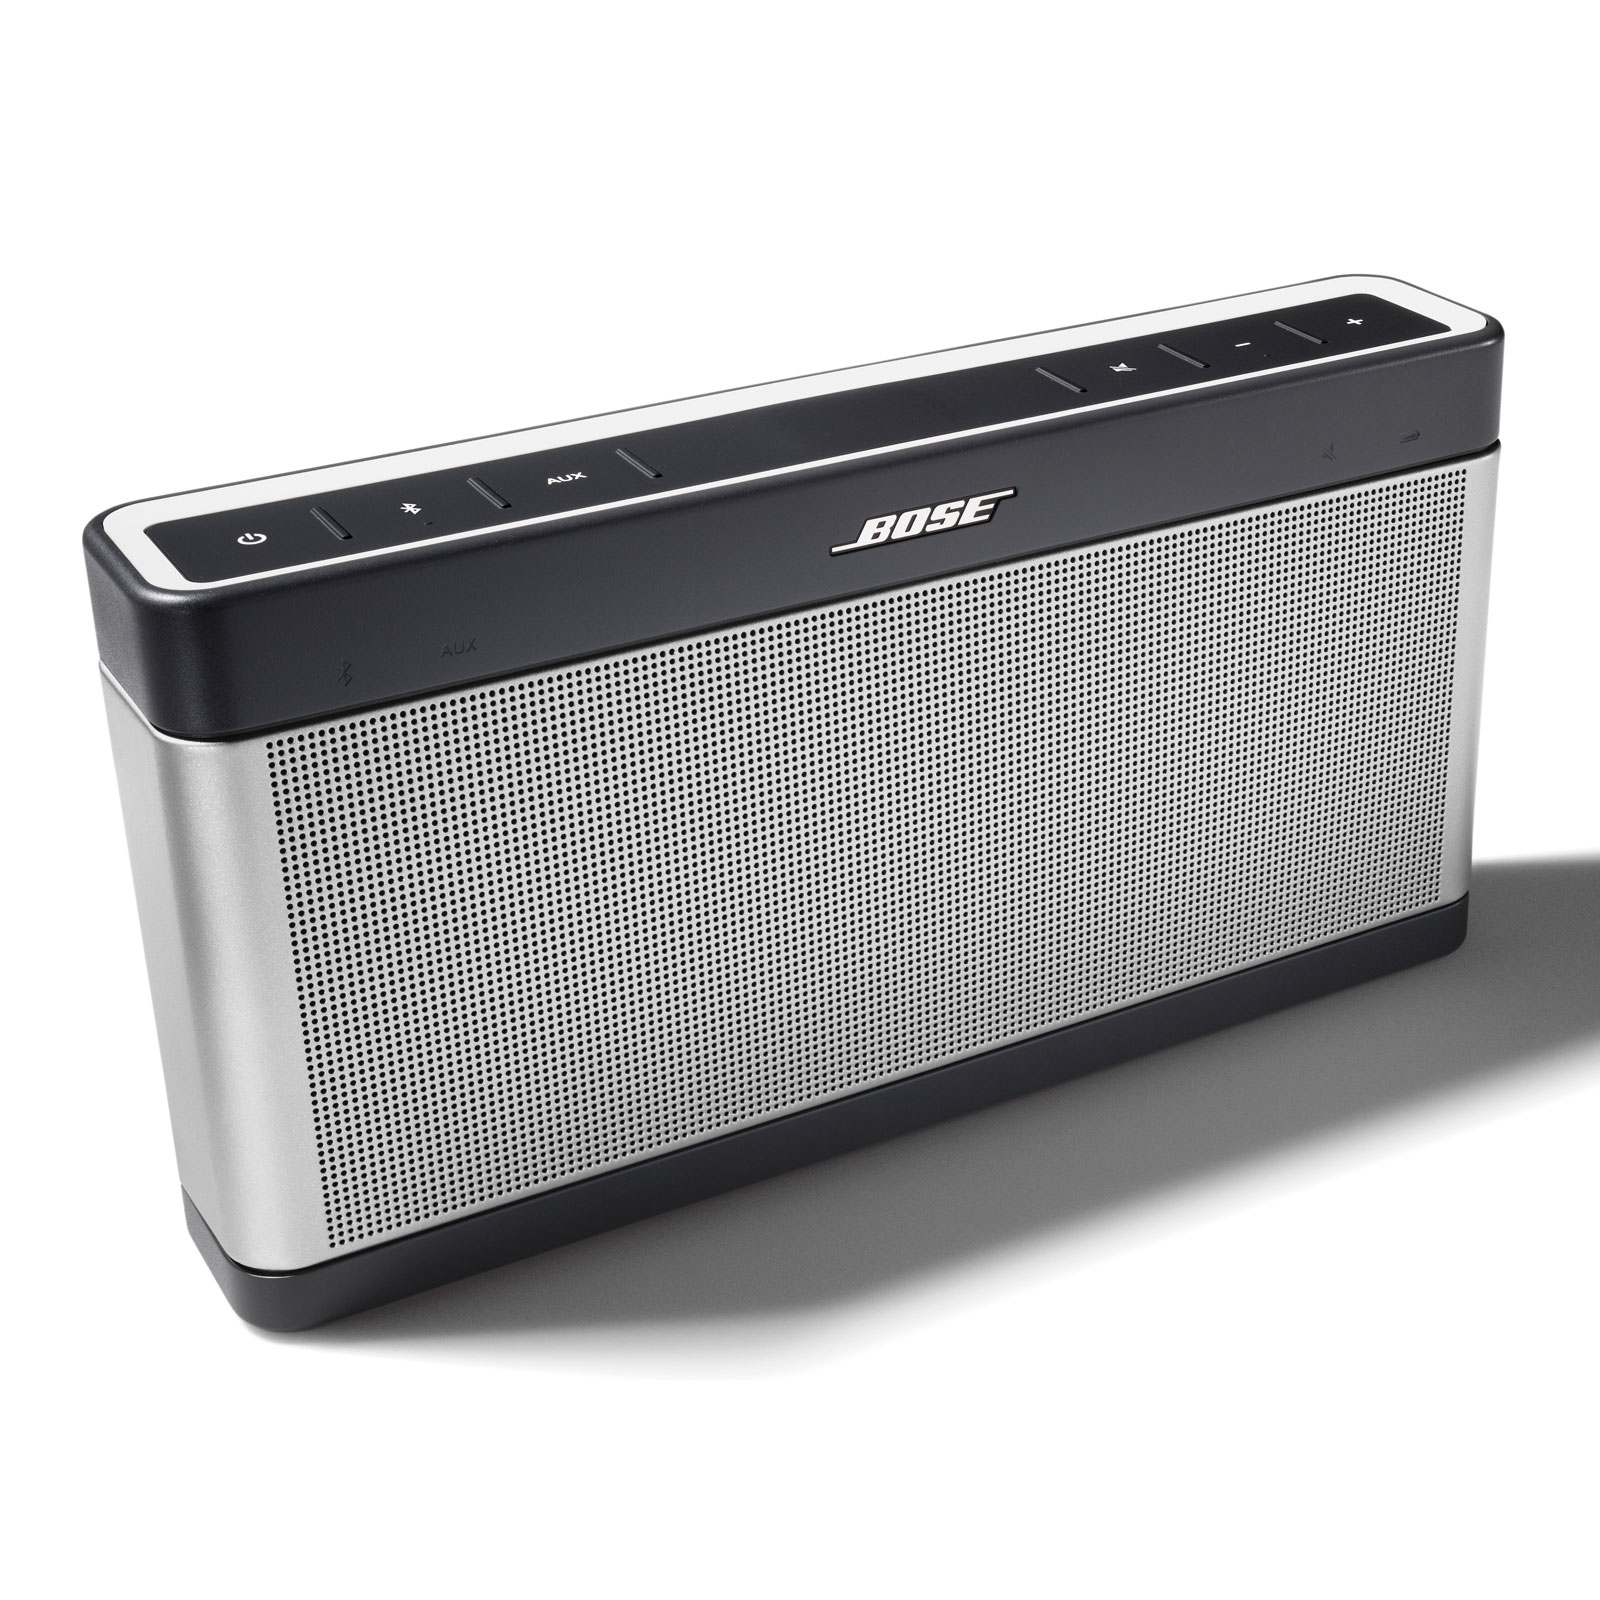 bose soundlink iii dock enceinte bluetooth bose sur ldlc. Black Bedroom Furniture Sets. Home Design Ideas